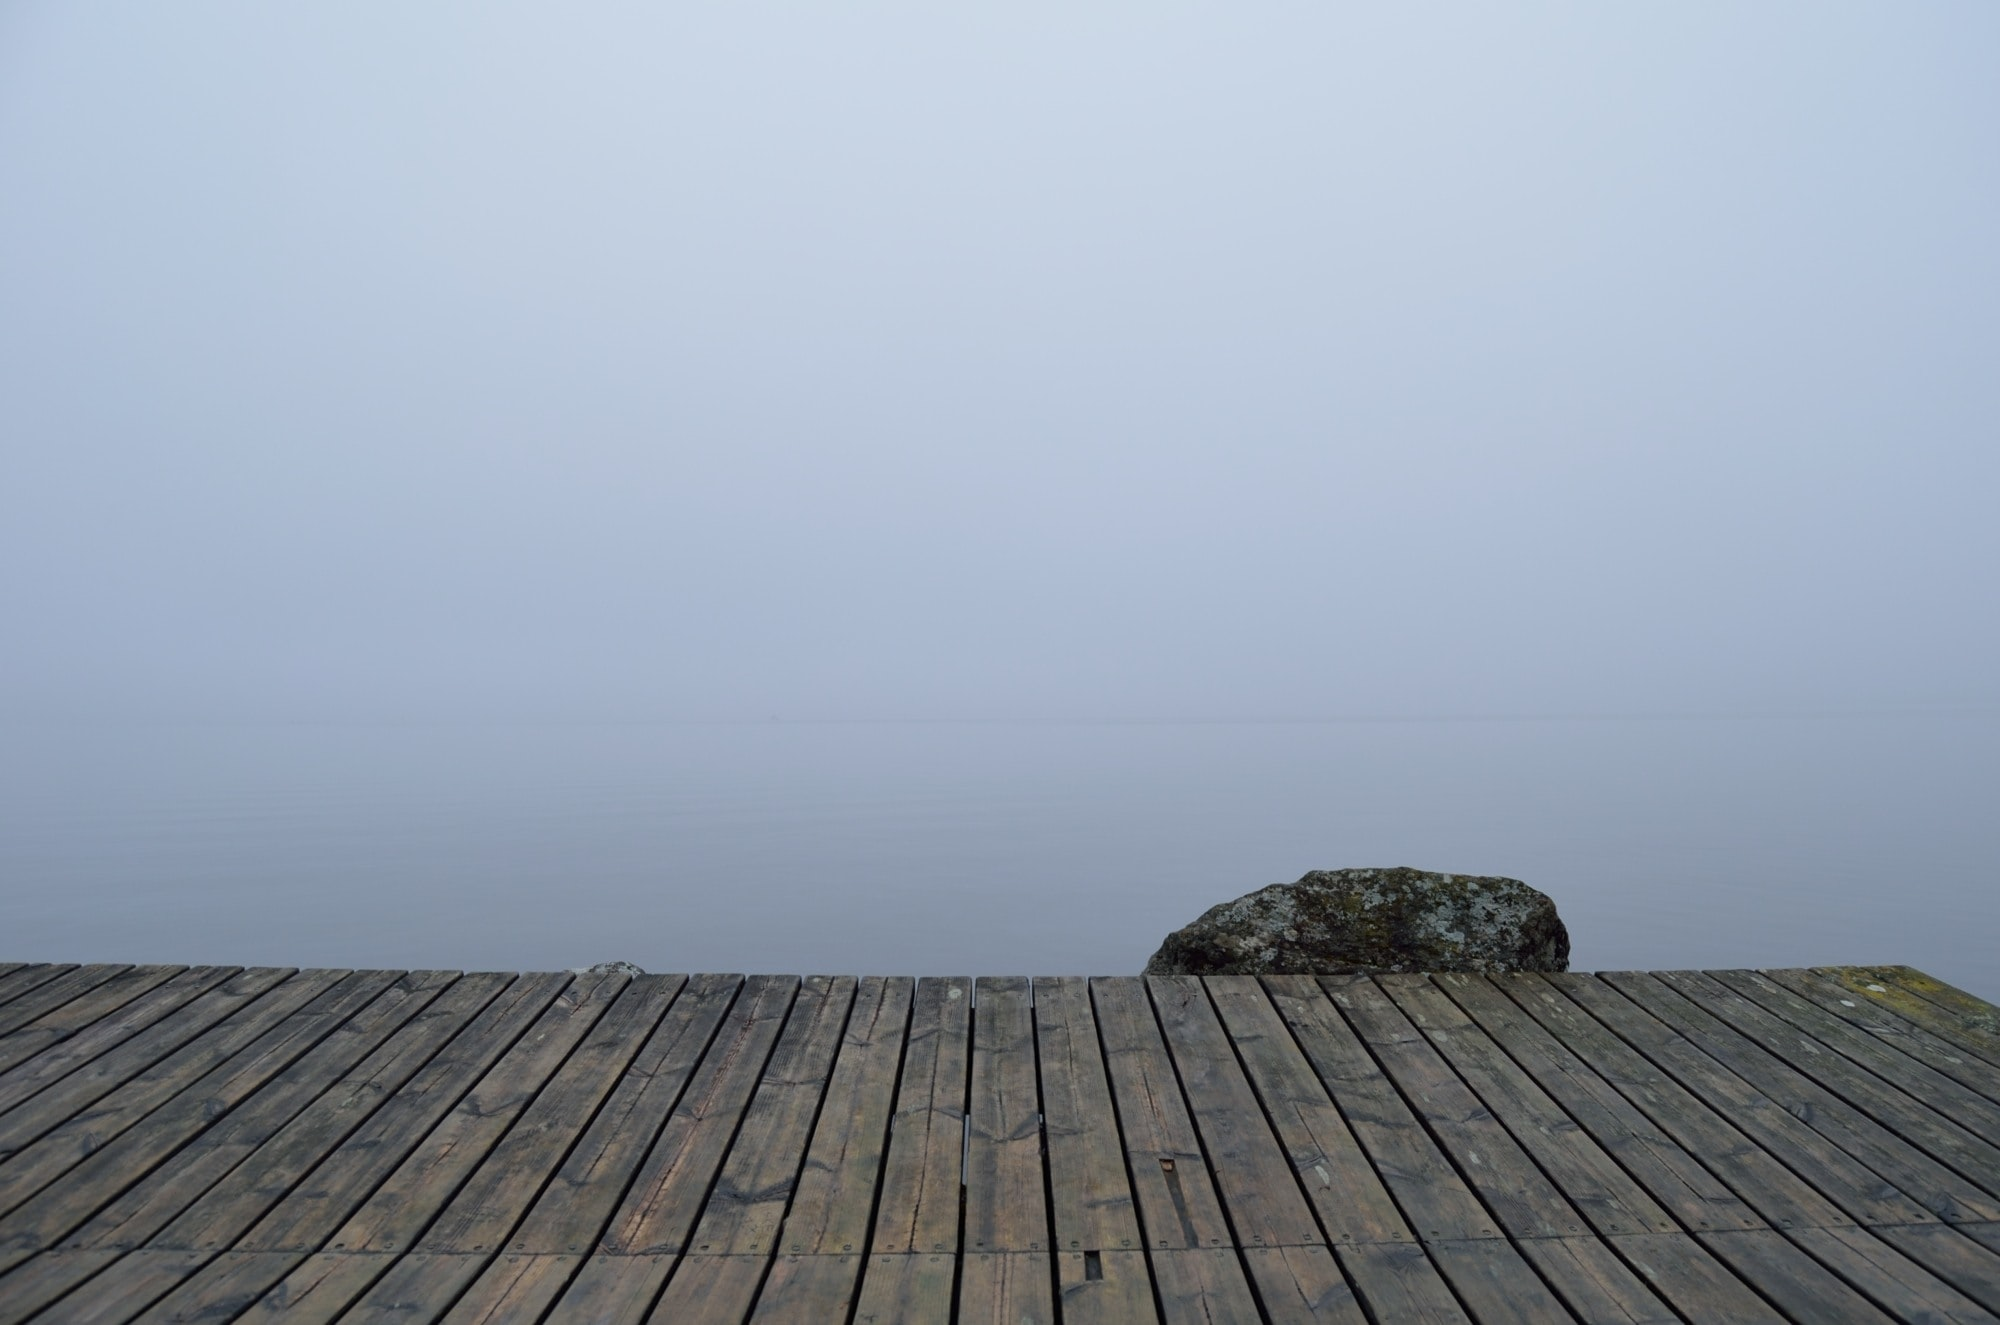 A dock on a foggy, moody day